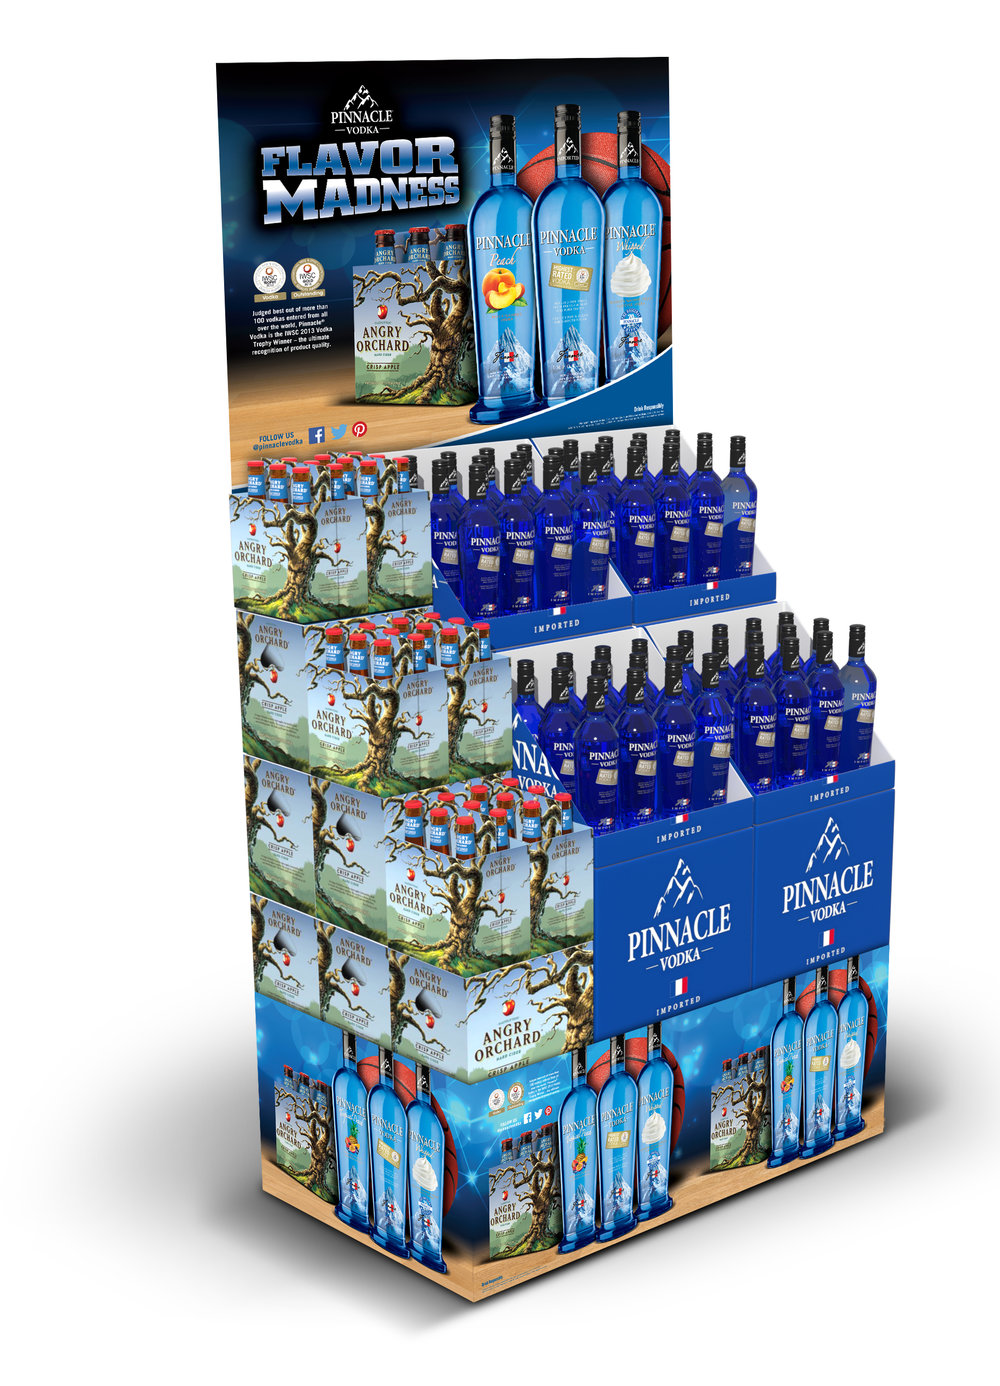 Pinacle_Vodka_Angry_Orchard_Flavor_Madness_Display_ON_DECK_CS.jpg